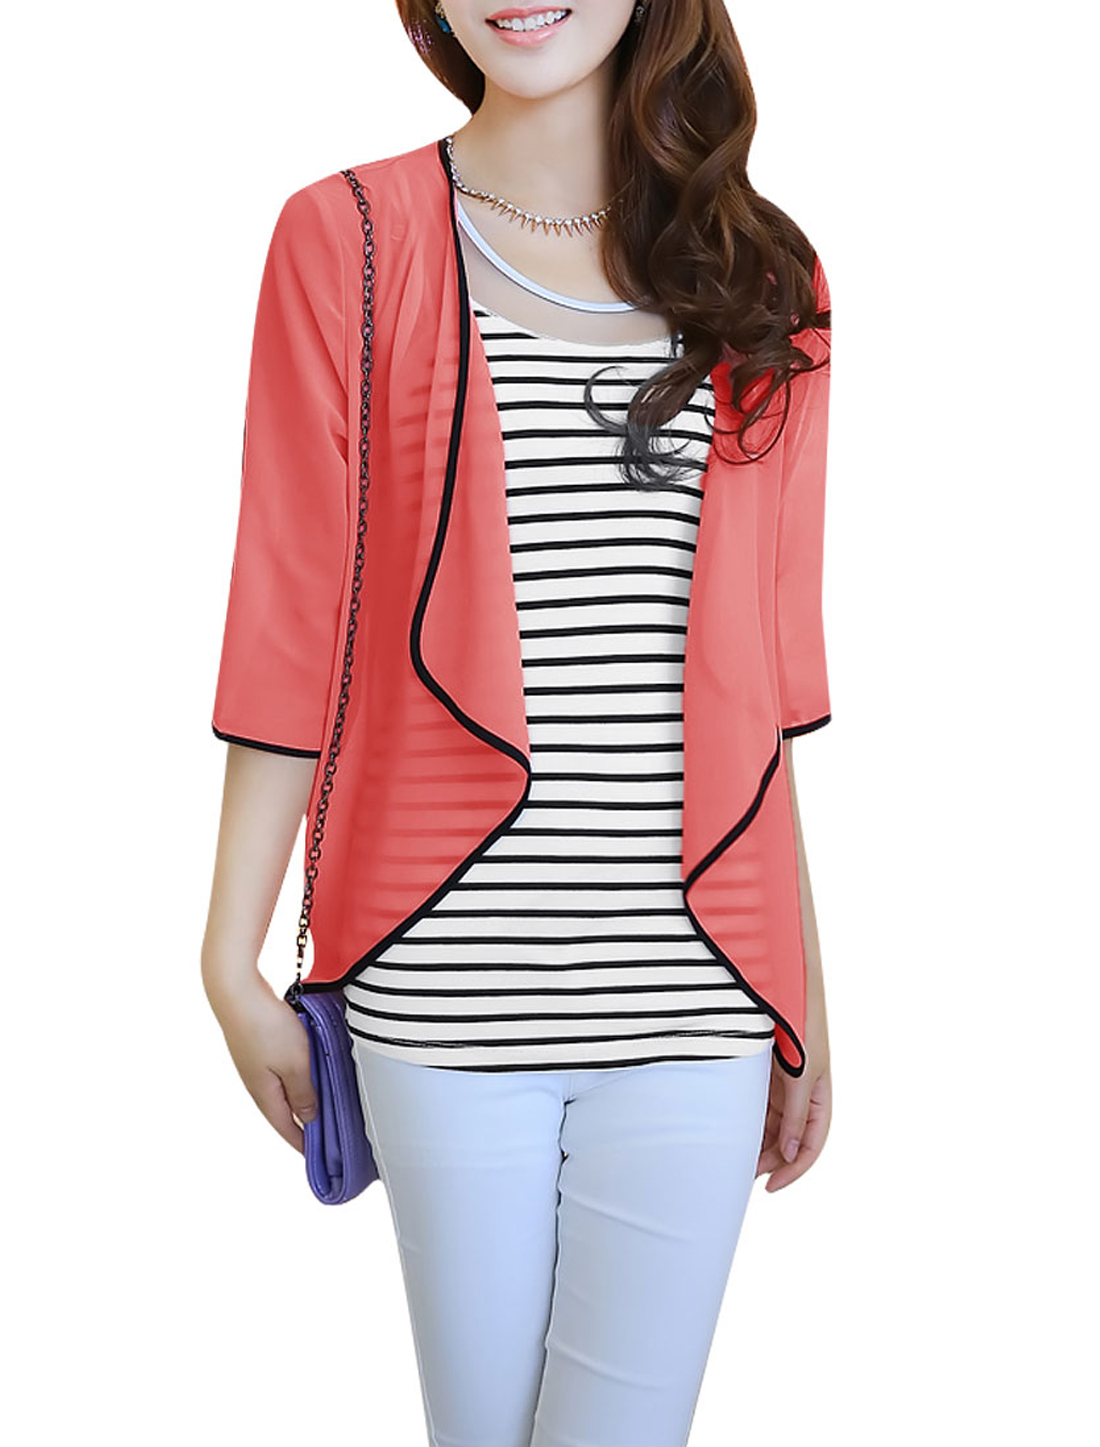 Ladies Semi Sheer Cardigan & Pullover Tank Top Watermelon Red White S